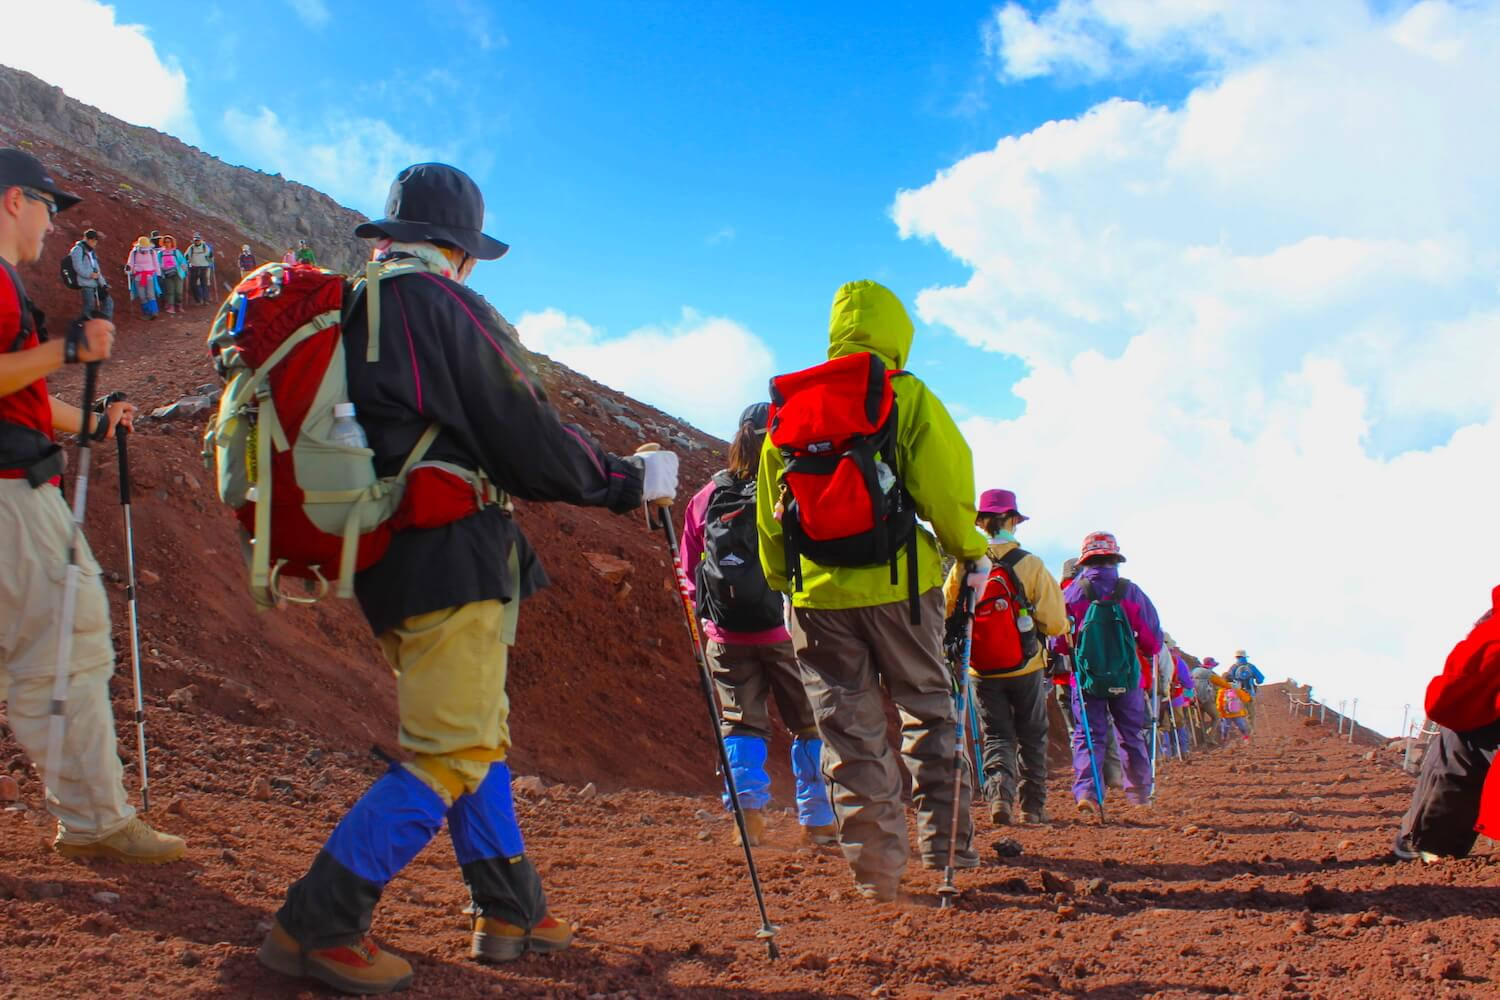 fashionable hiking clothes at mt fuji